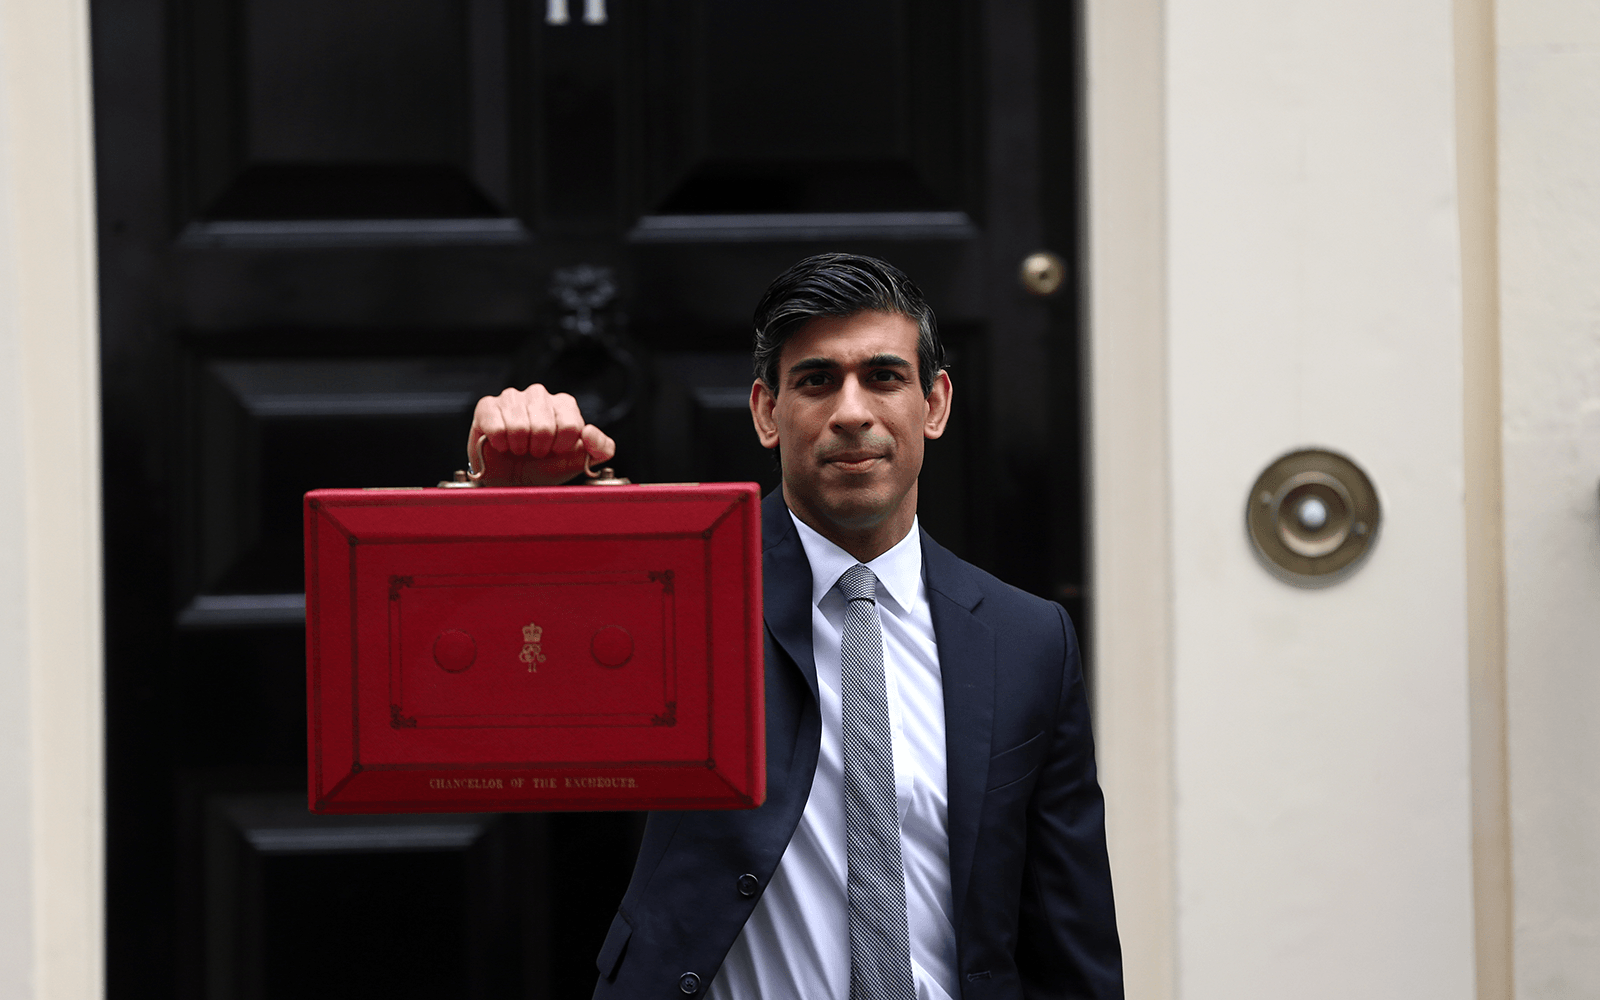 Budget 2021: What It Means for Small Businesses